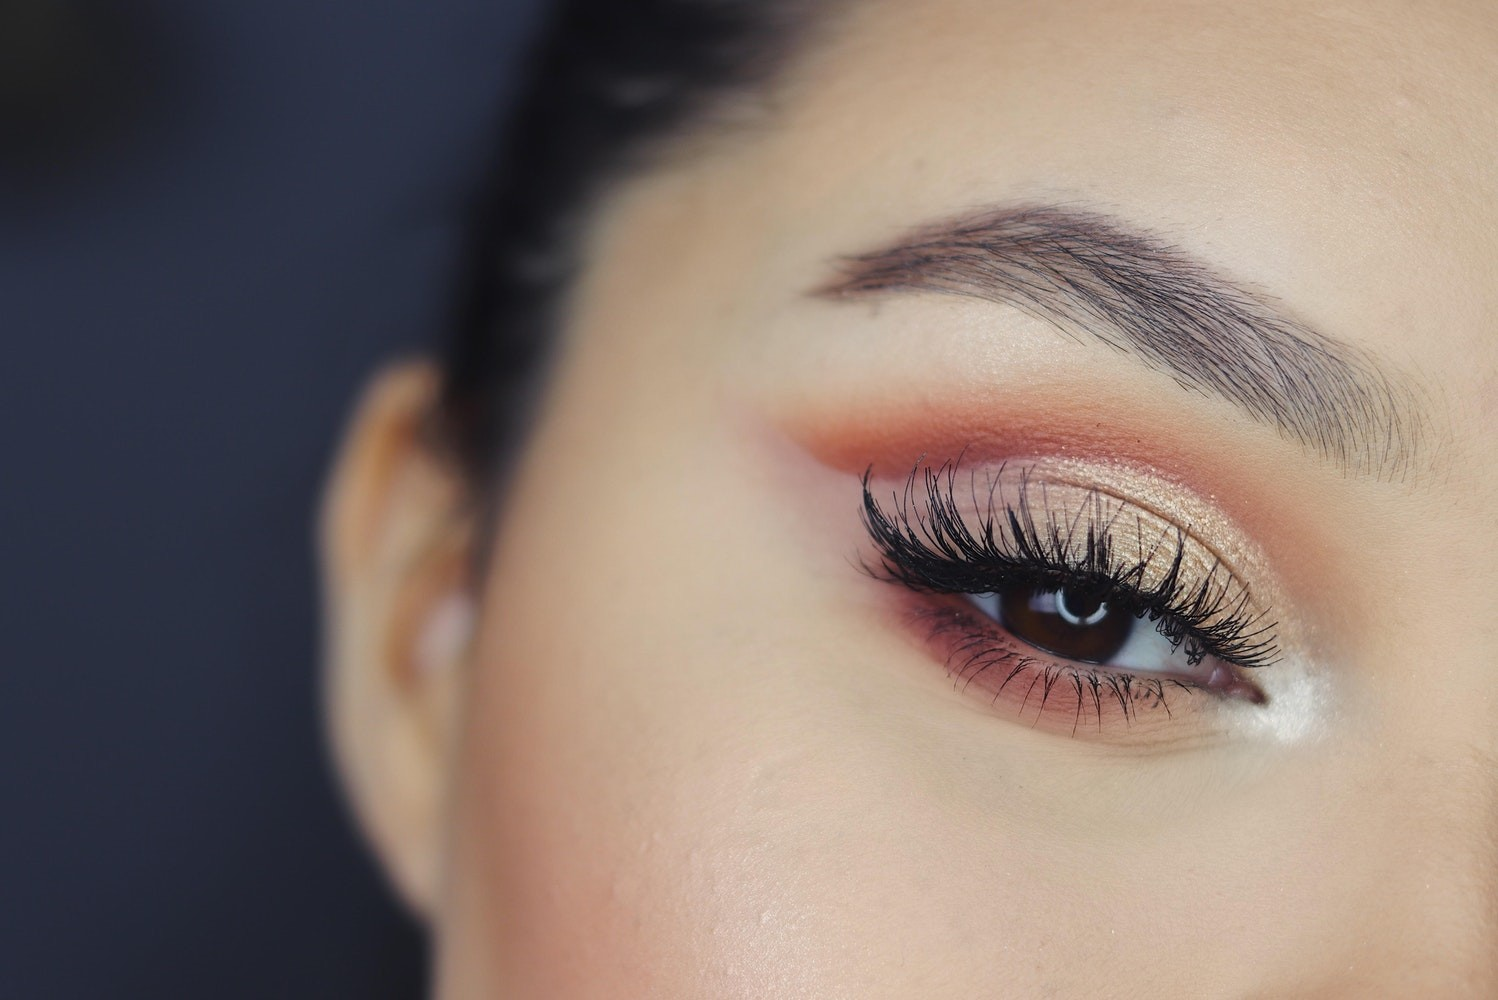 close of eye with lash extensions and shimmery eyeshadow.